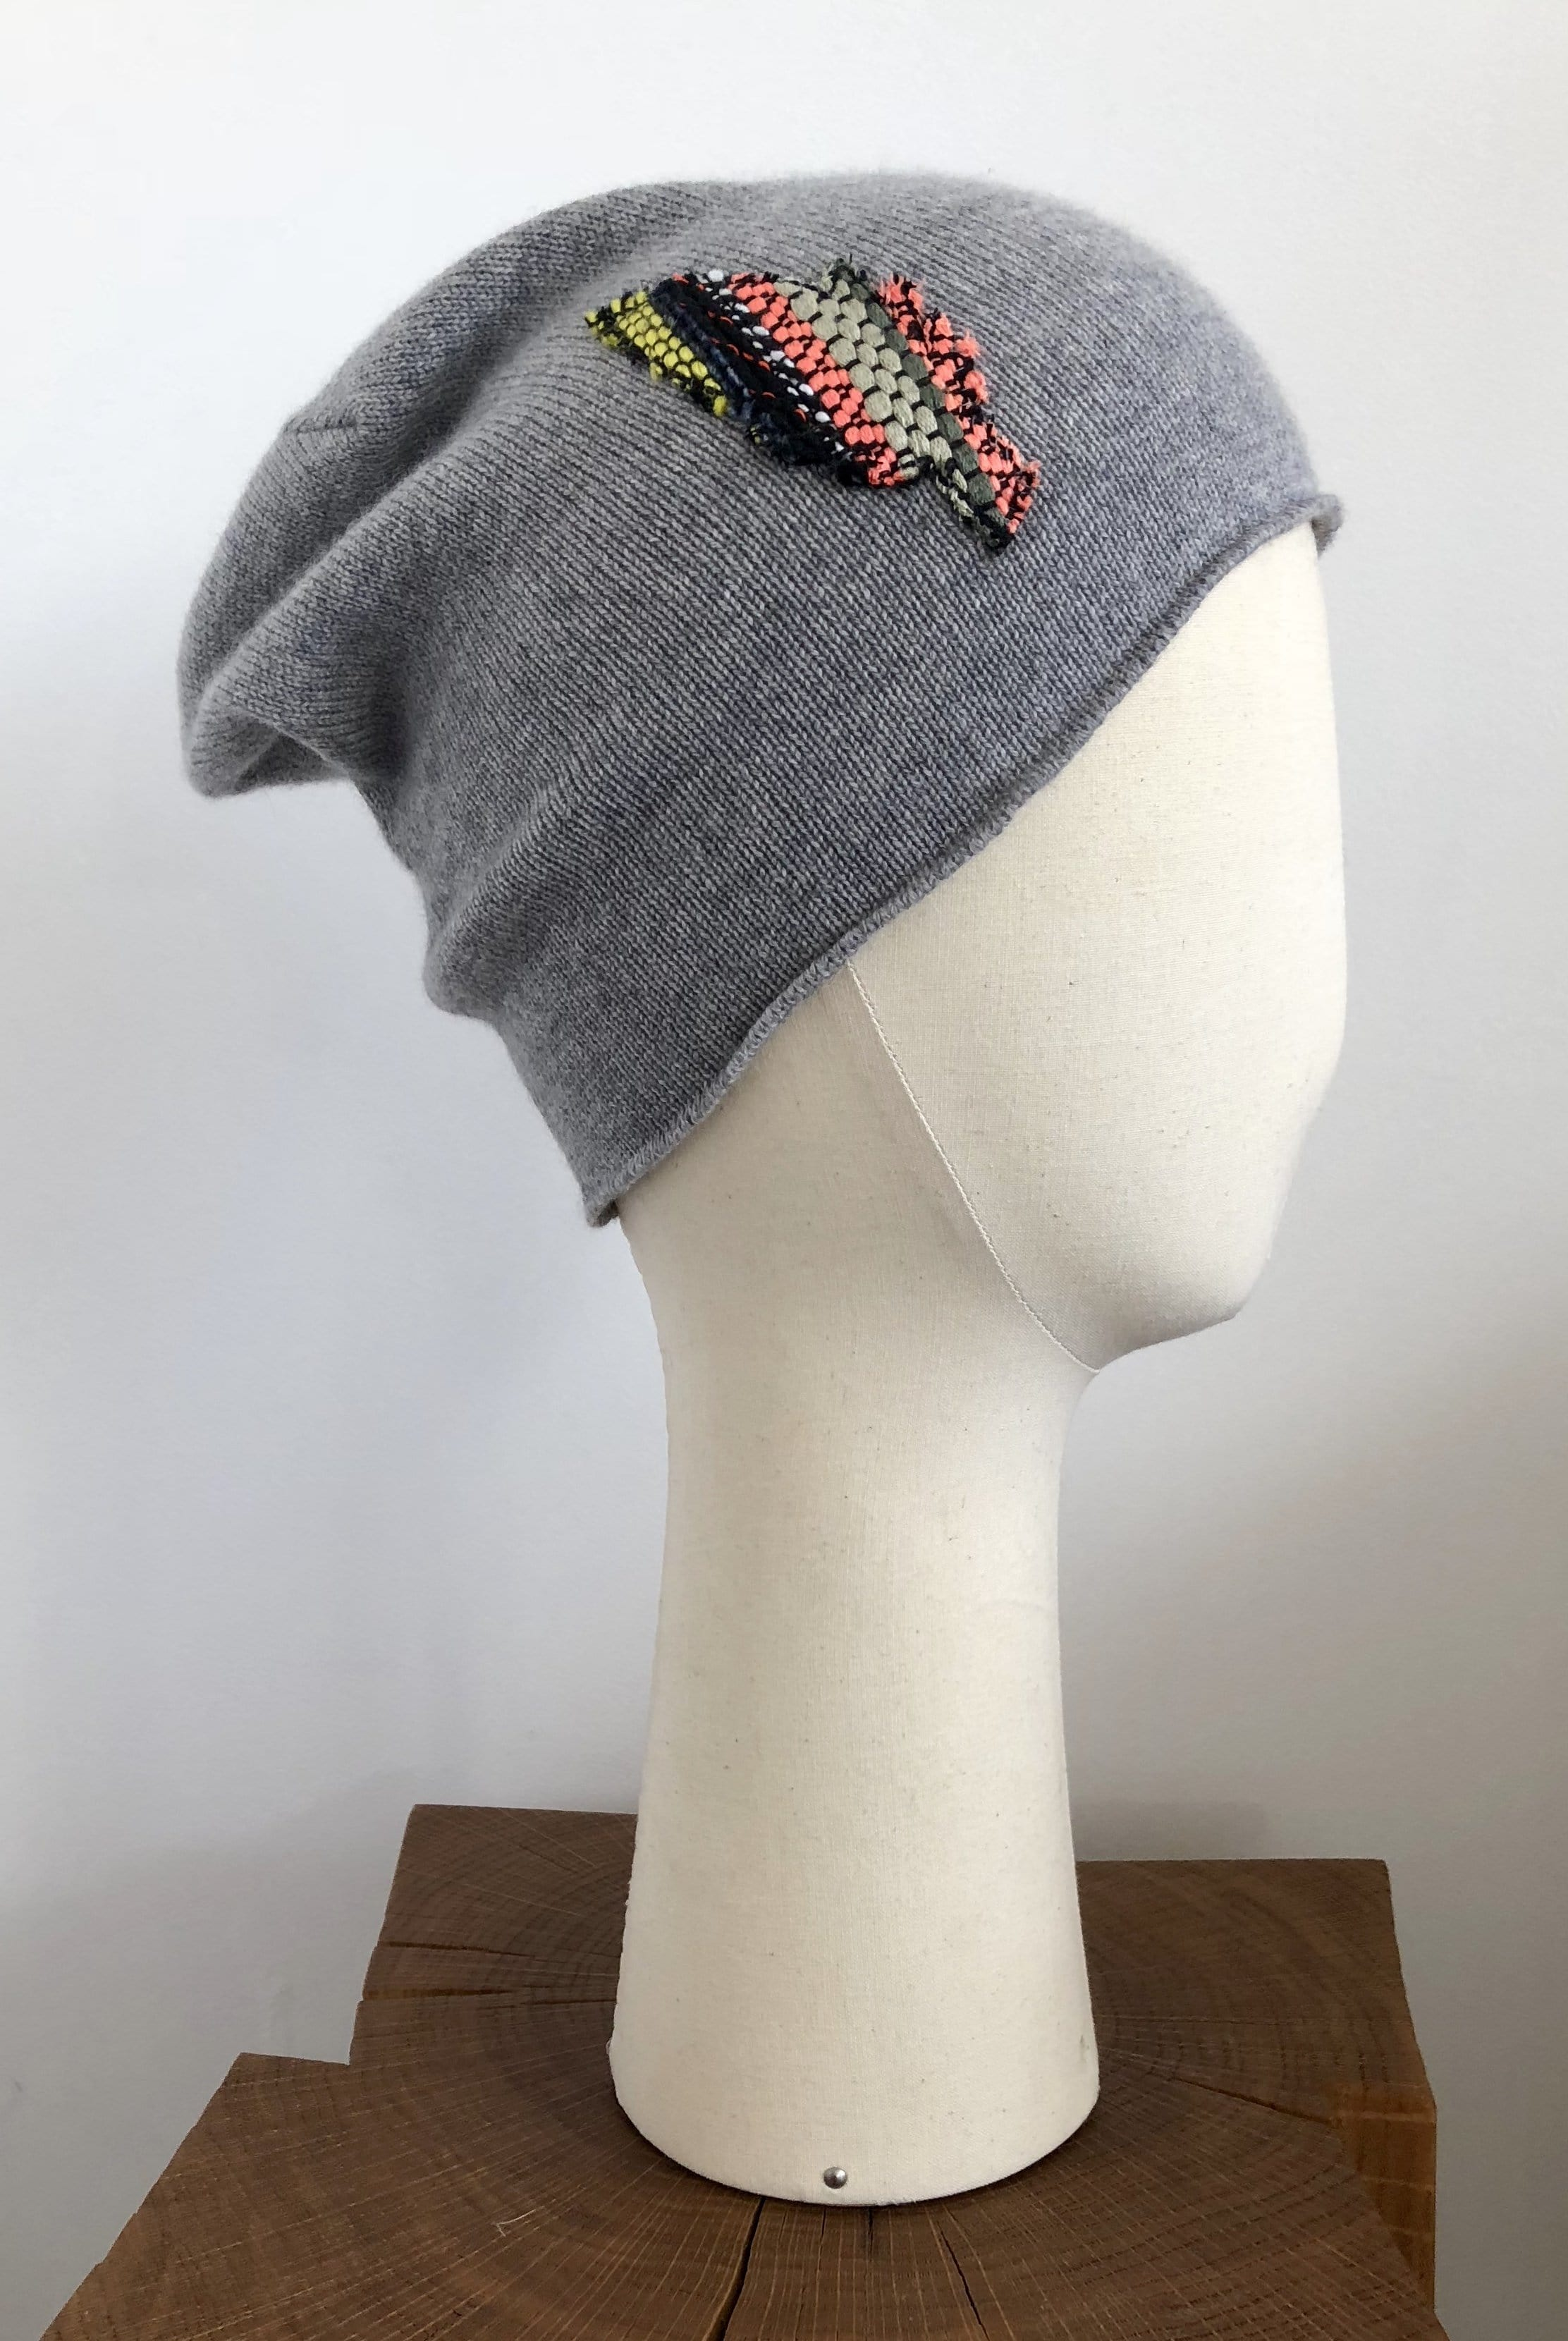 Bonnet surfer Evesome maille serrée 100% cachemire avec patch en tweed - Beanie surfer Evesome tight mesh 100% cashmere with tweed patch